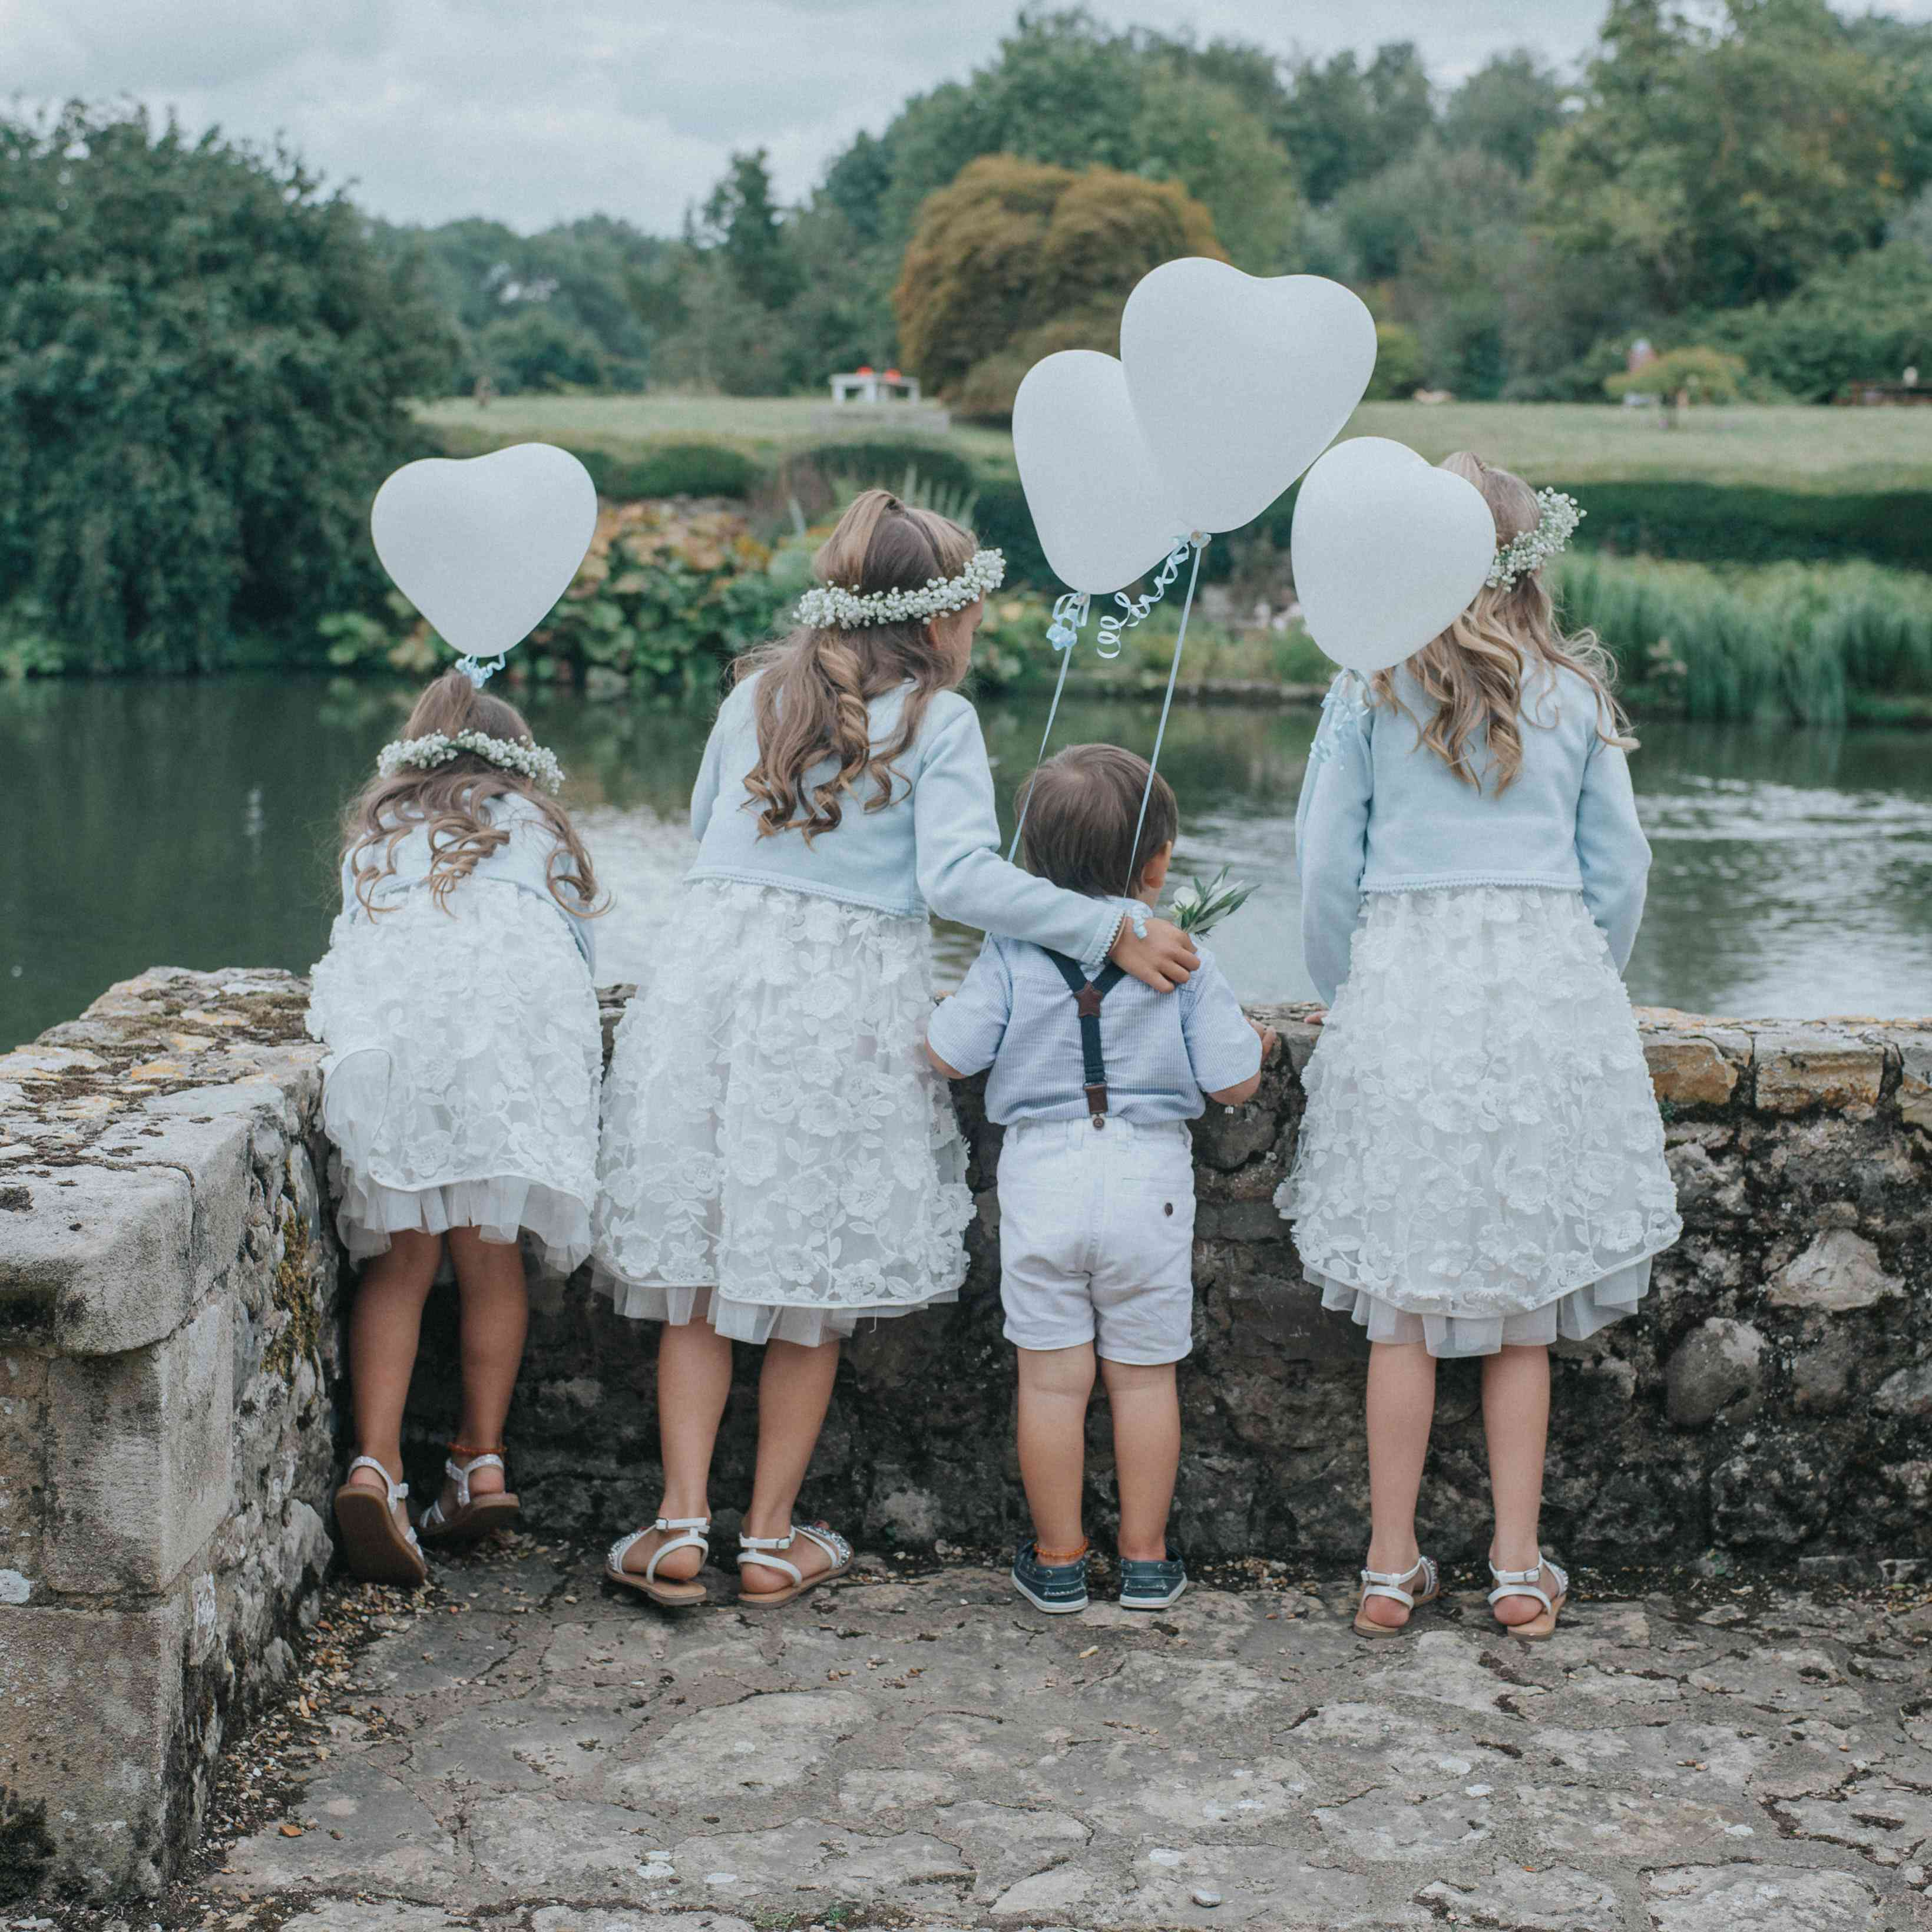 Three flower girls and one ring bearer looking out on body of water carrying white heart-shaped balloons